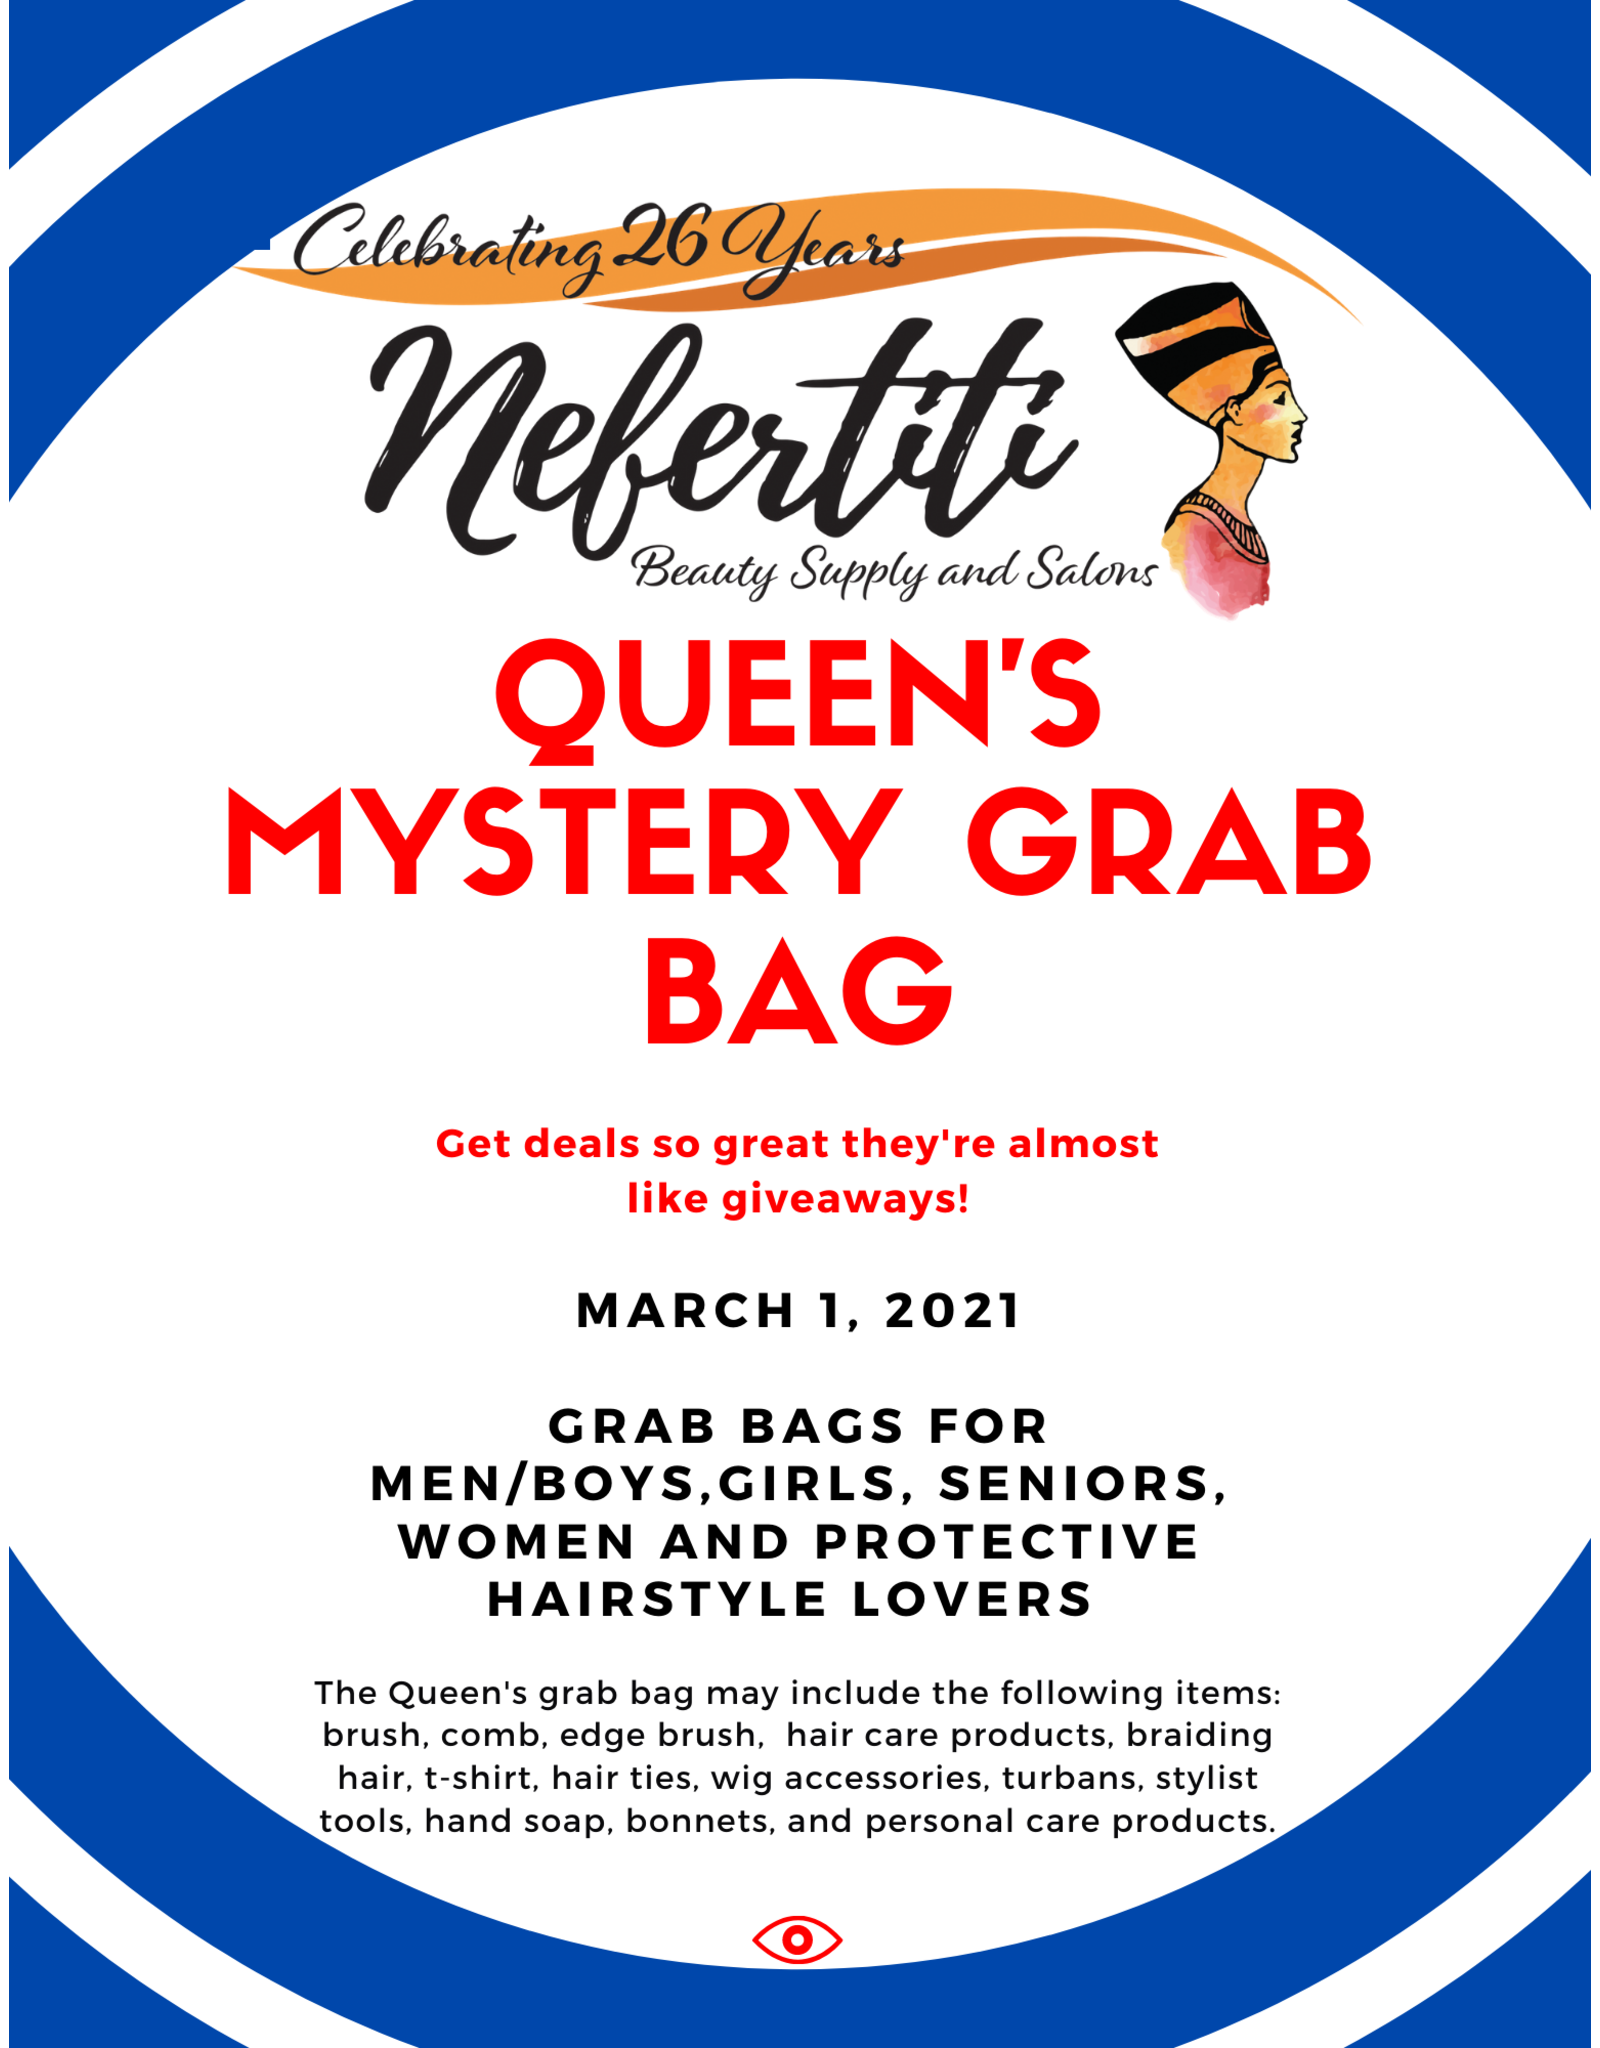 Queen's  Mystery Grab Bag - Get deals so great they're almost like giveaways.